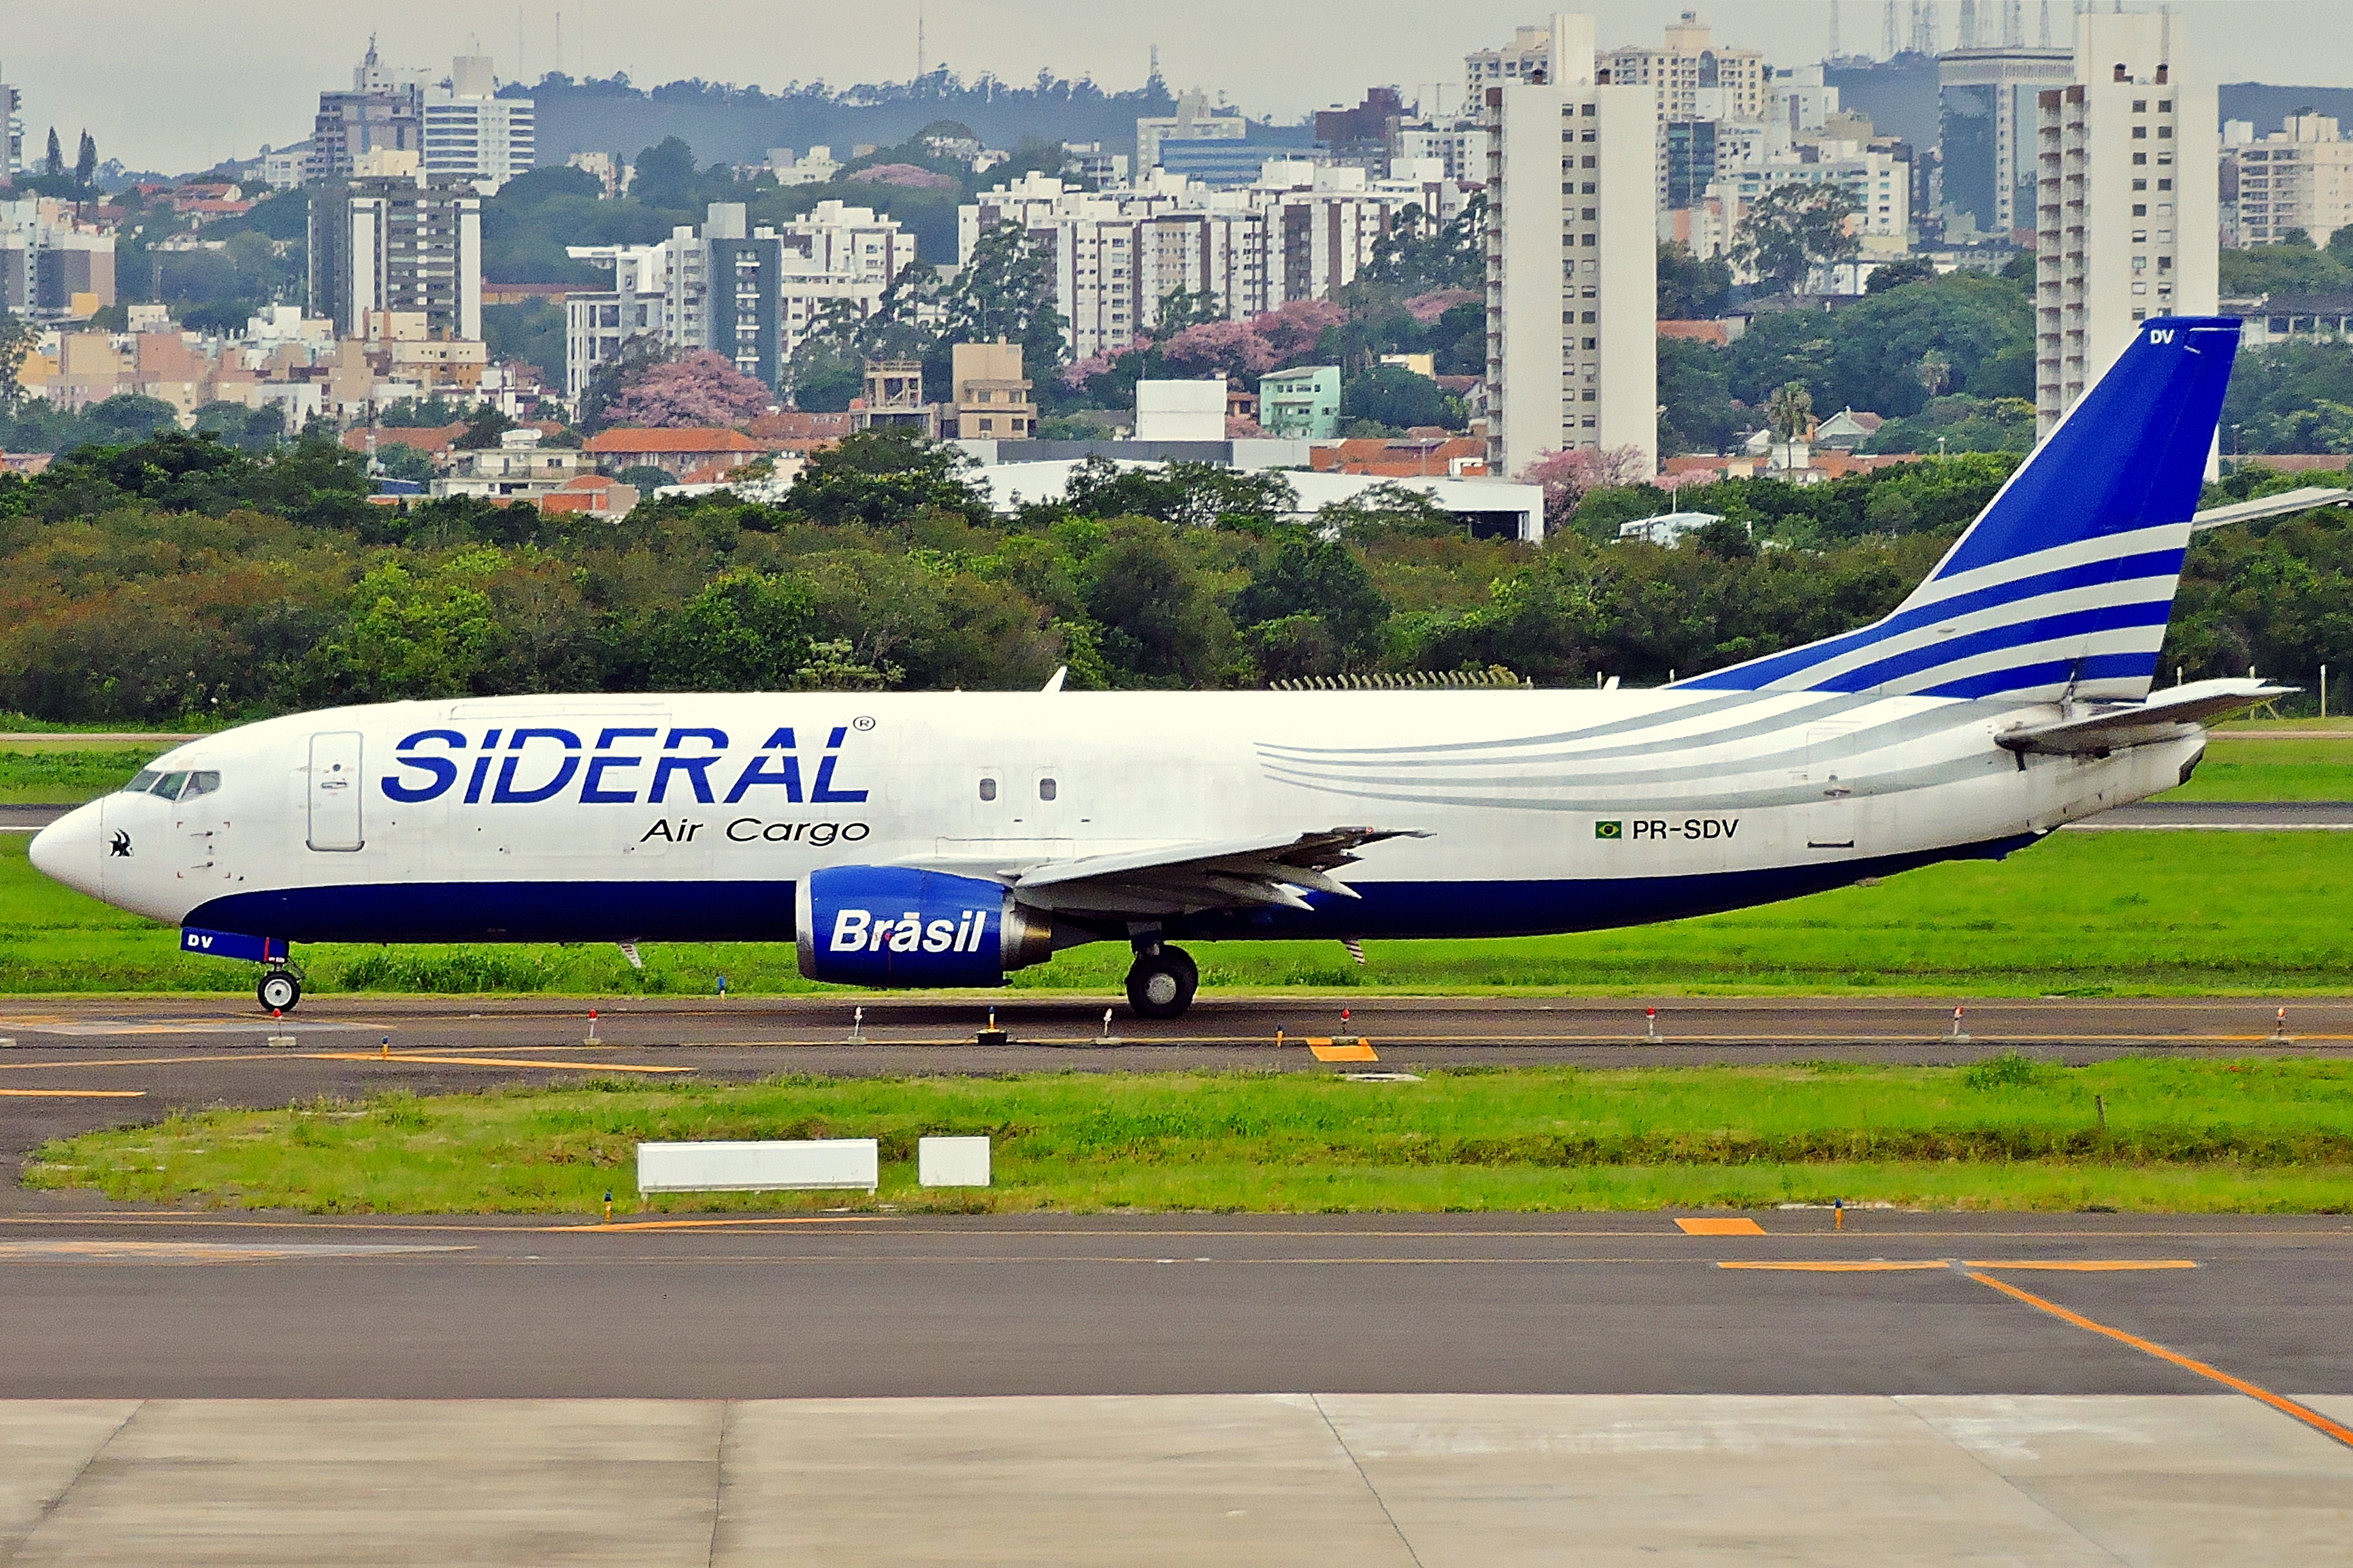 Sideral (airline) - Wikipedia